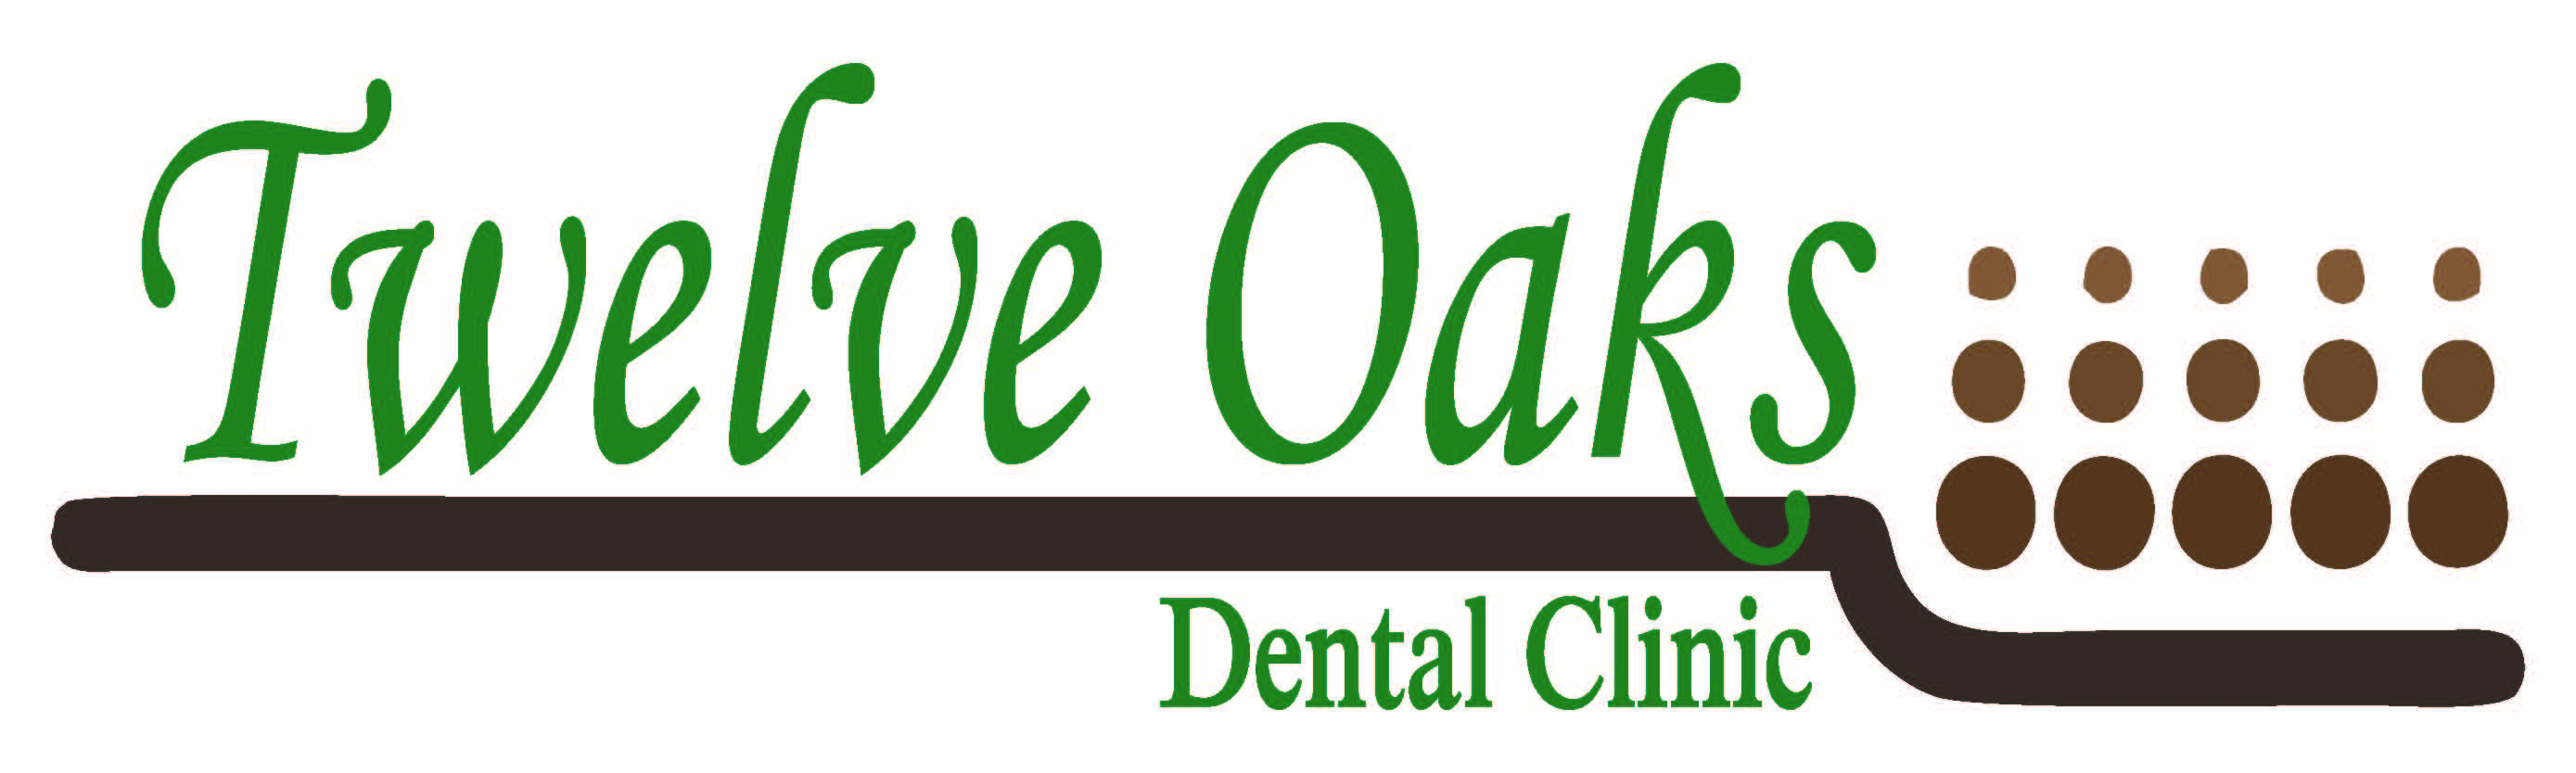 Twelve Oaks Dental